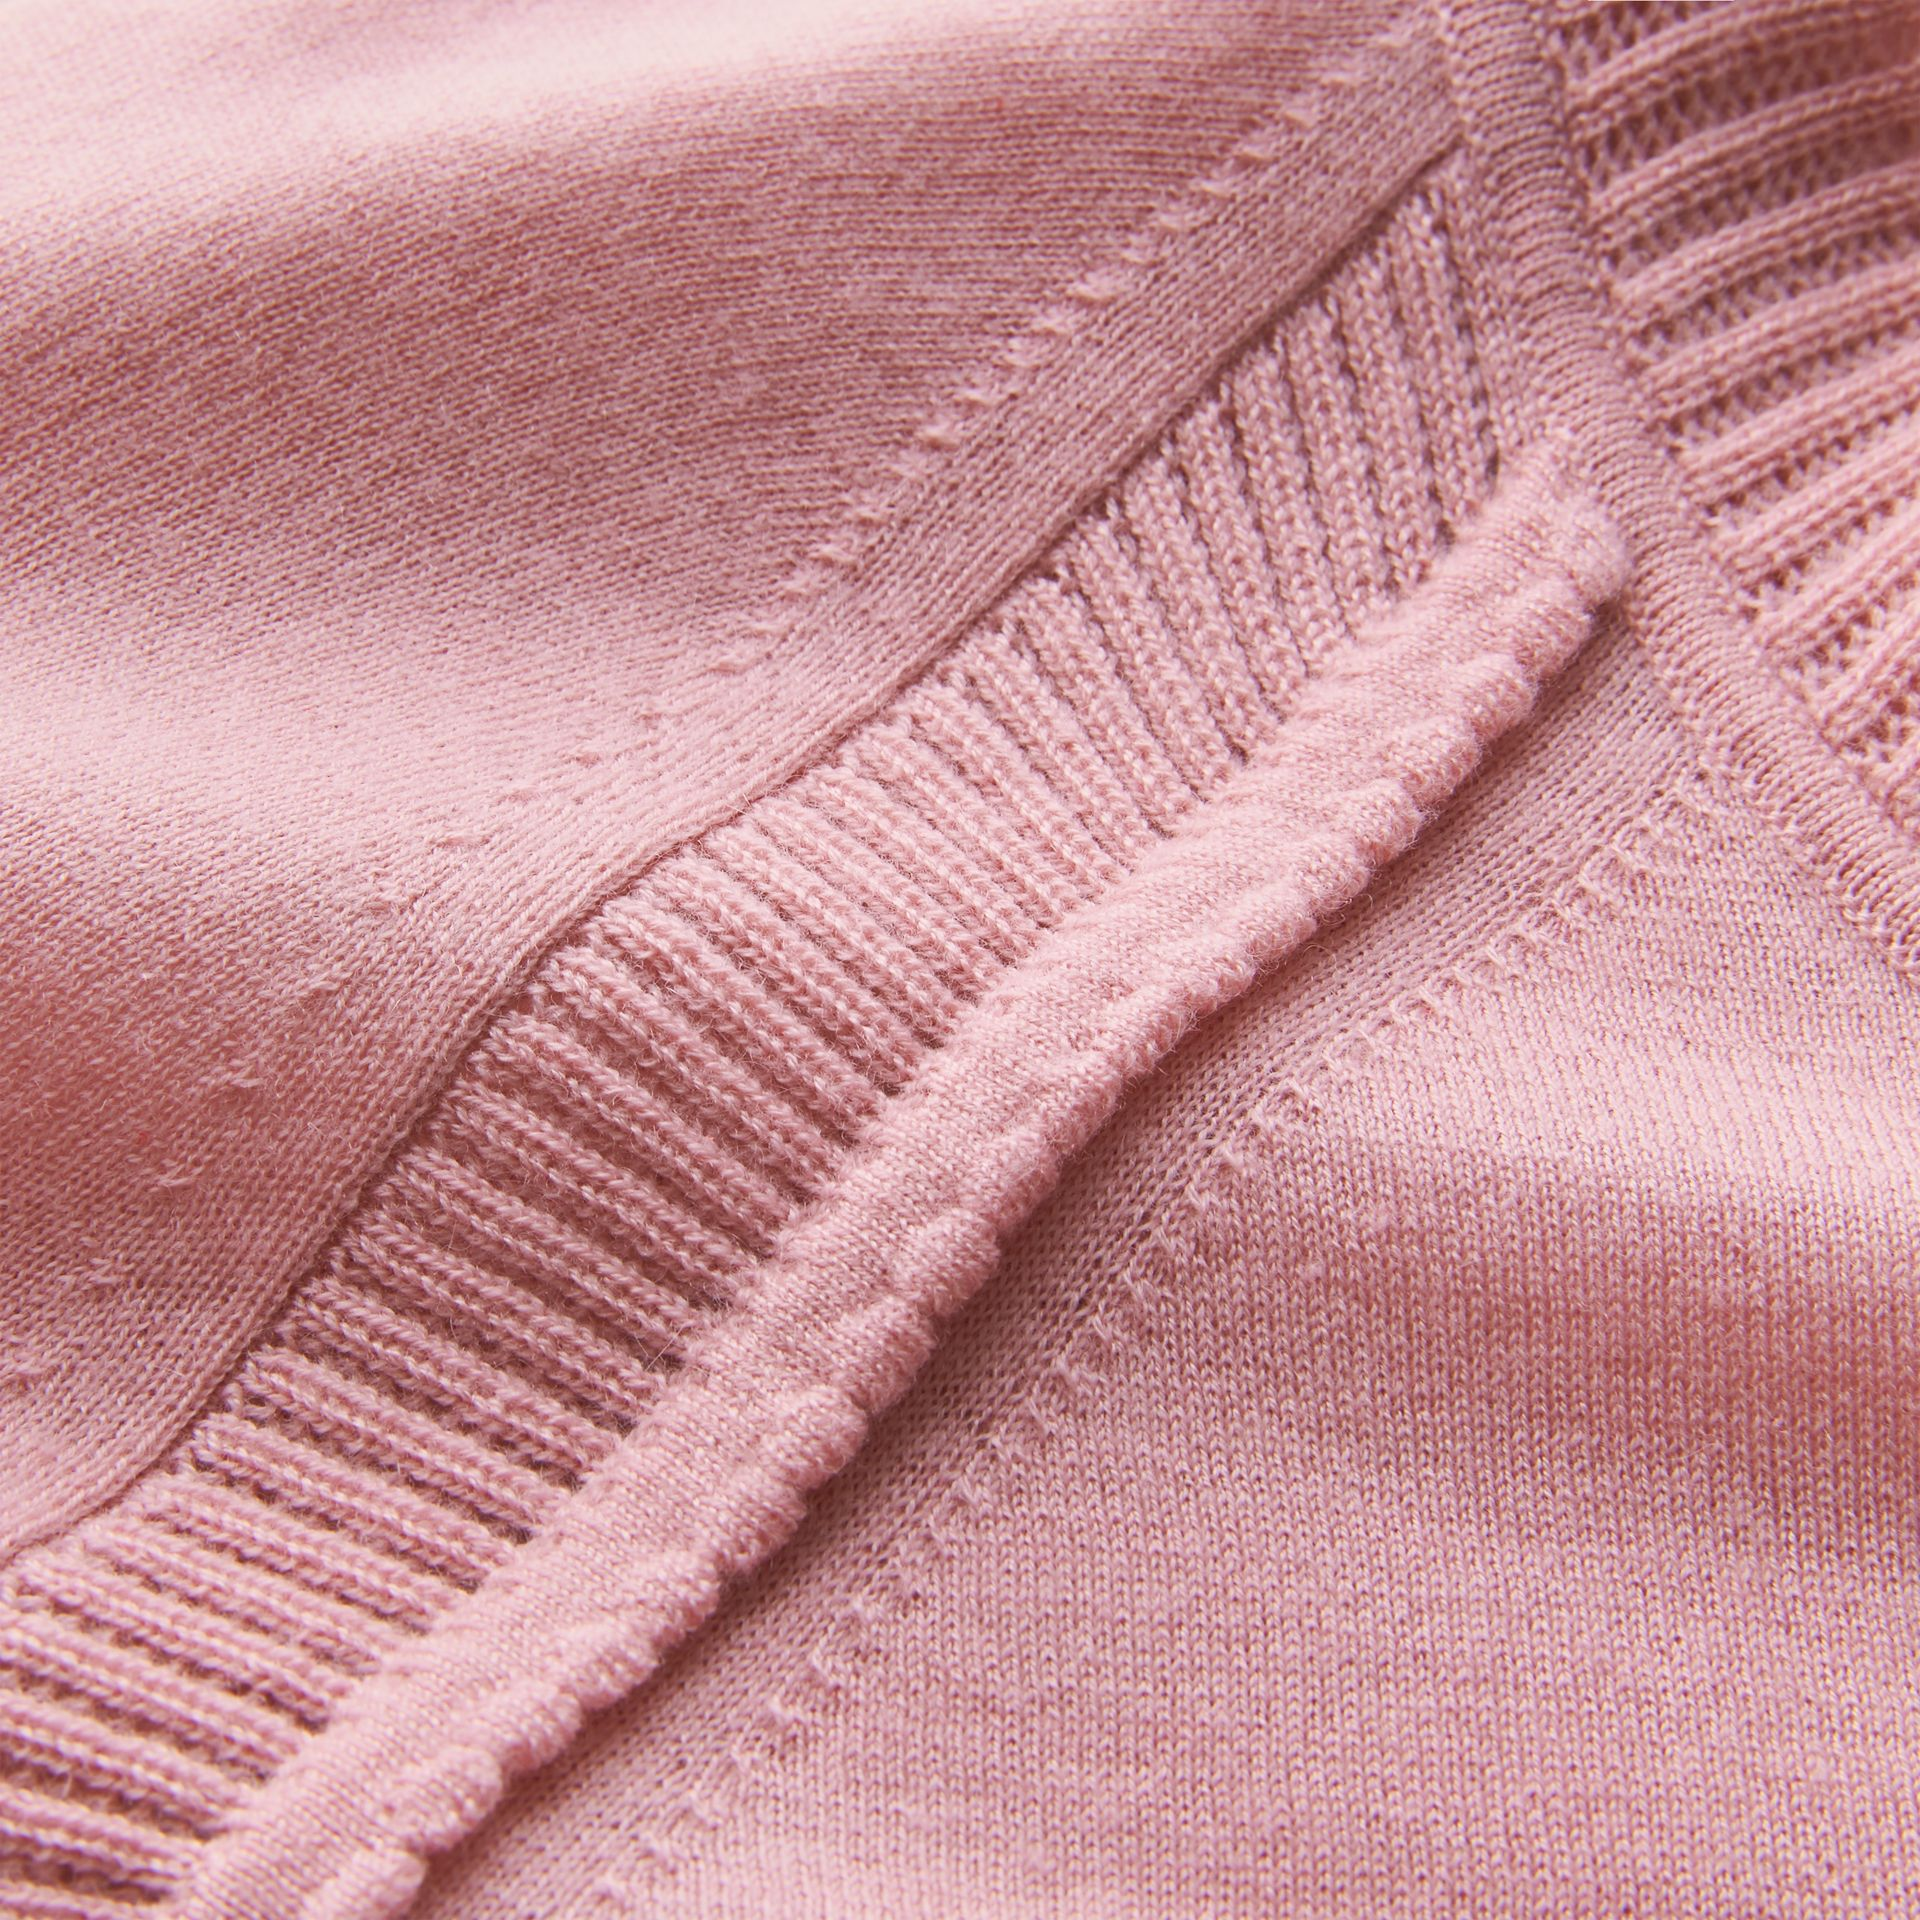 Open-knit Detail Cashmere Cardigan in Apricot Pink - Women | Burberry Hong Kong - gallery image 2